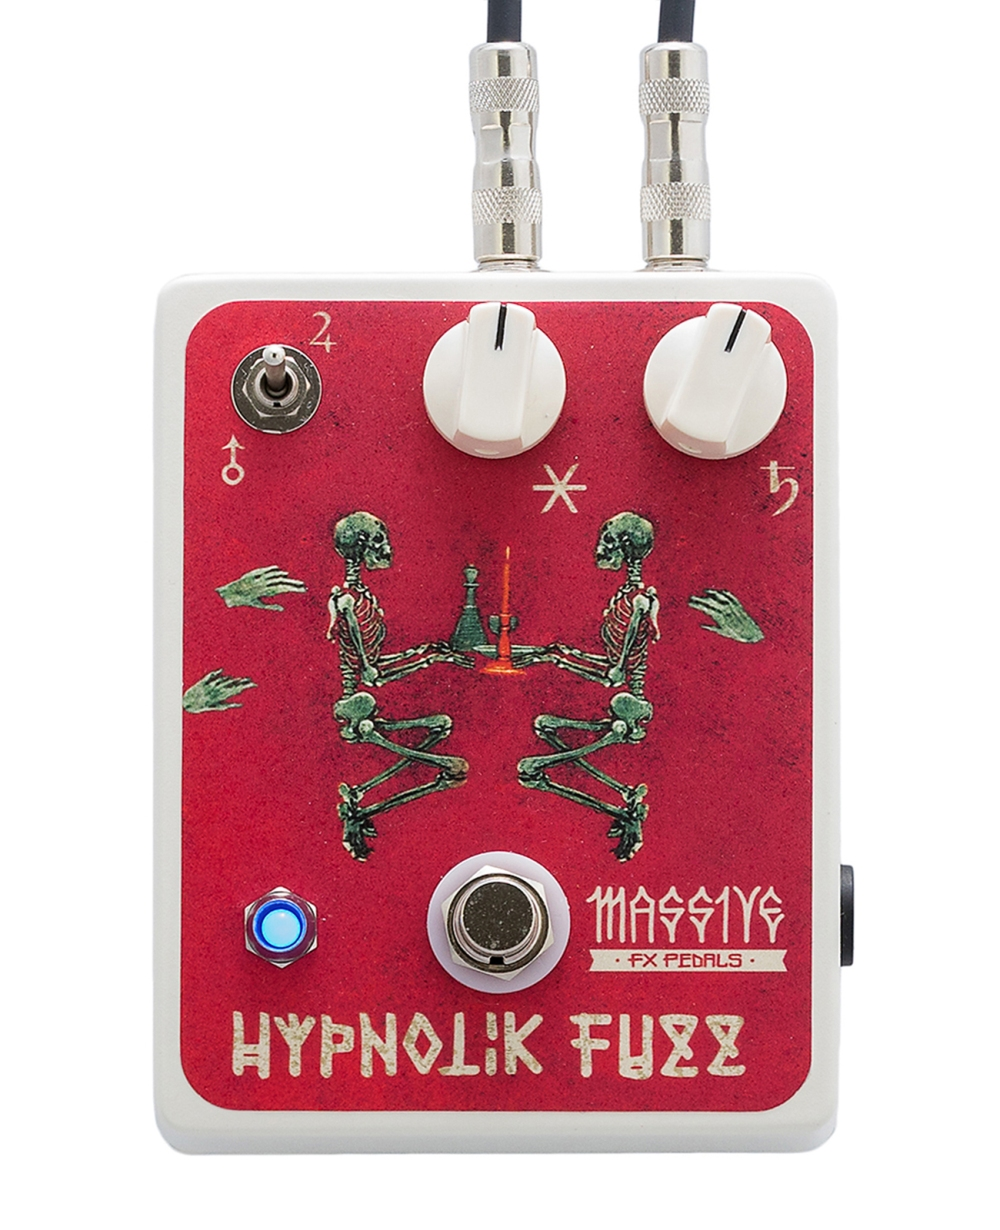 Massive FX Pedals Hypnotik Fuzz with cables